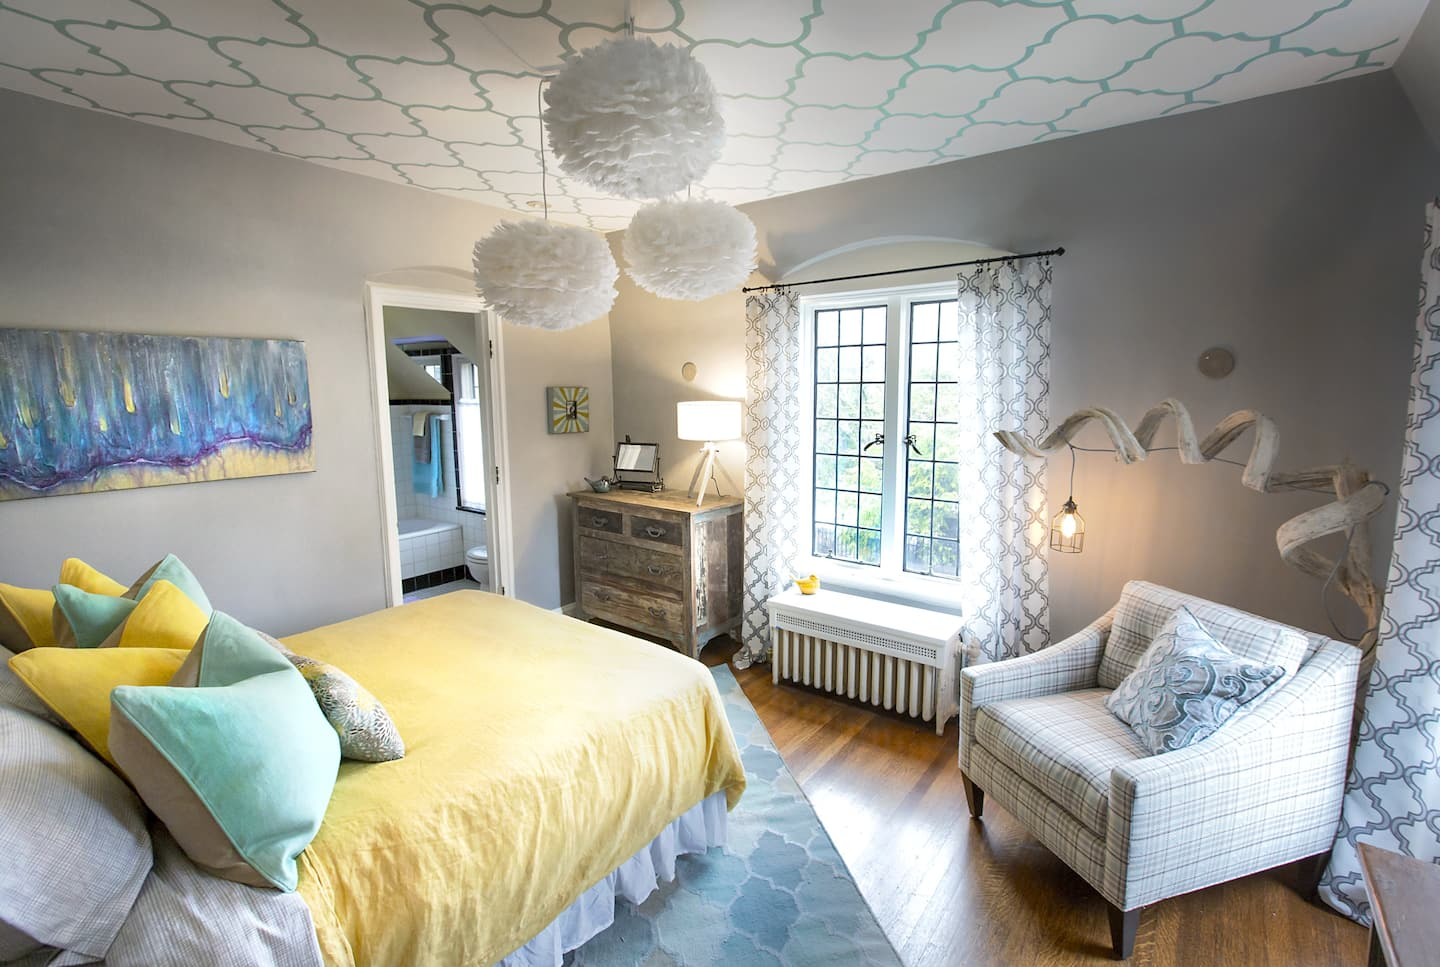 Lamp and pendant light in bedroom